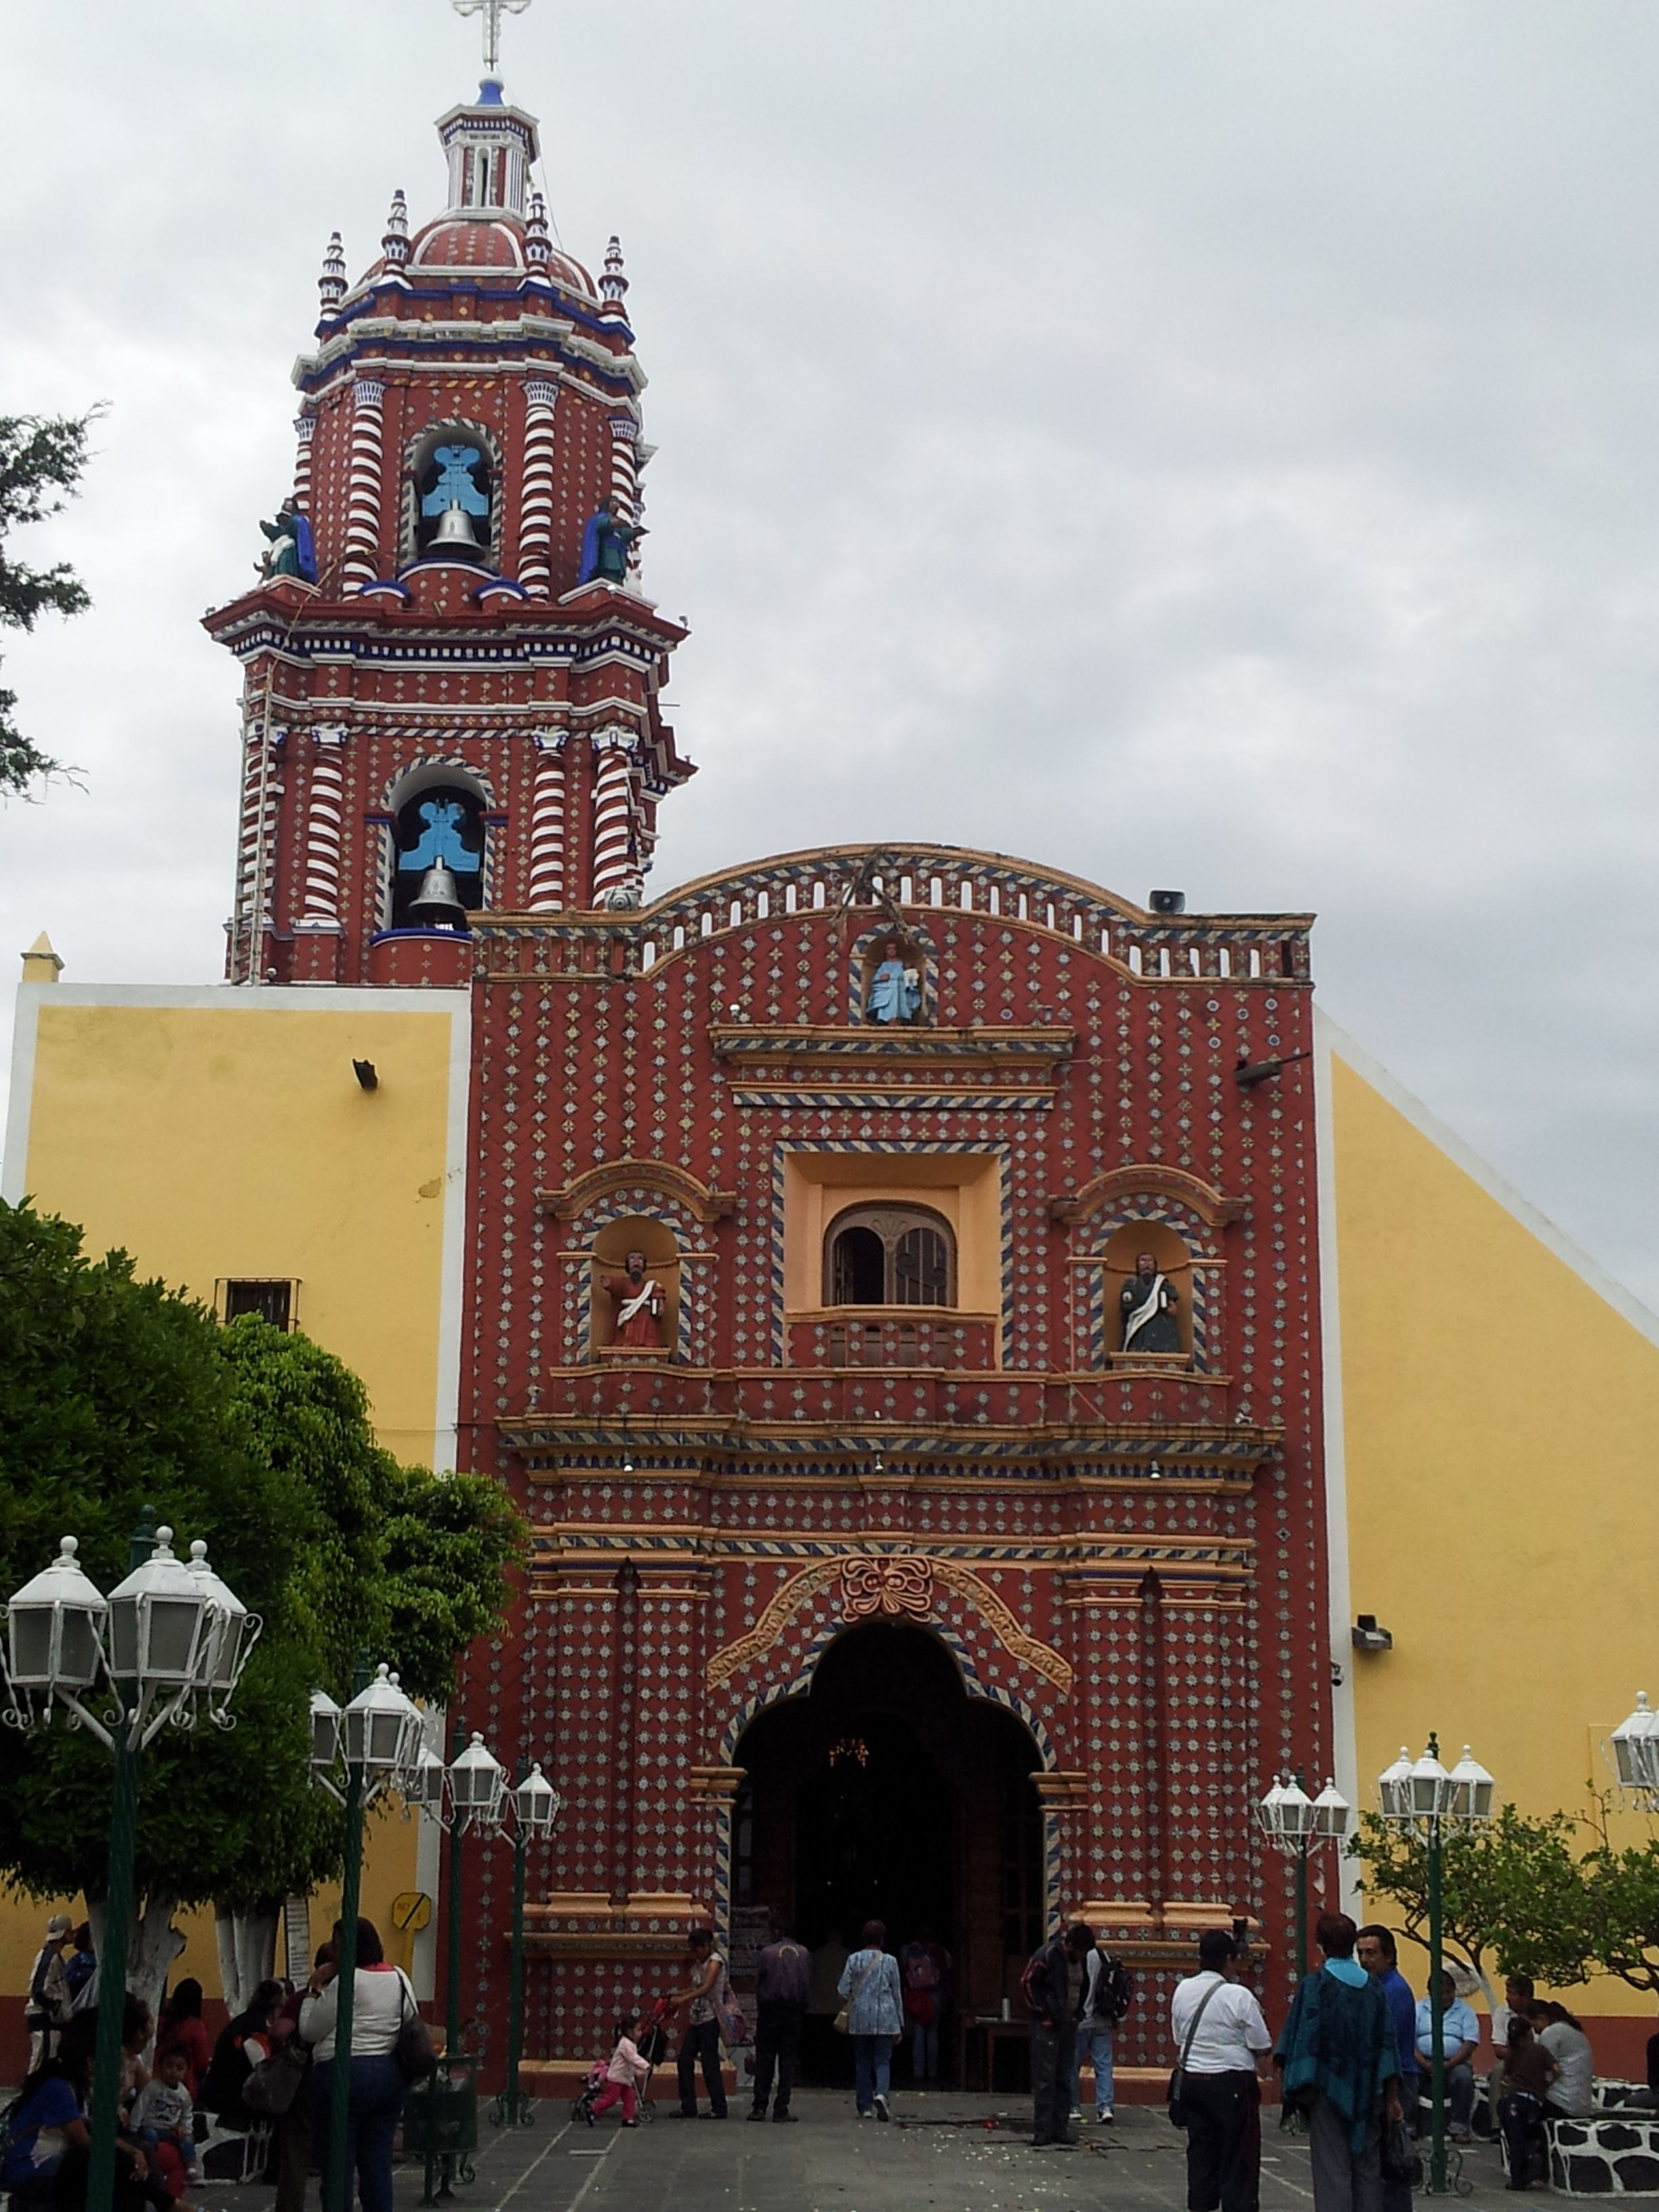 Pin on Puebla's Magical Communities, Towns, Cities